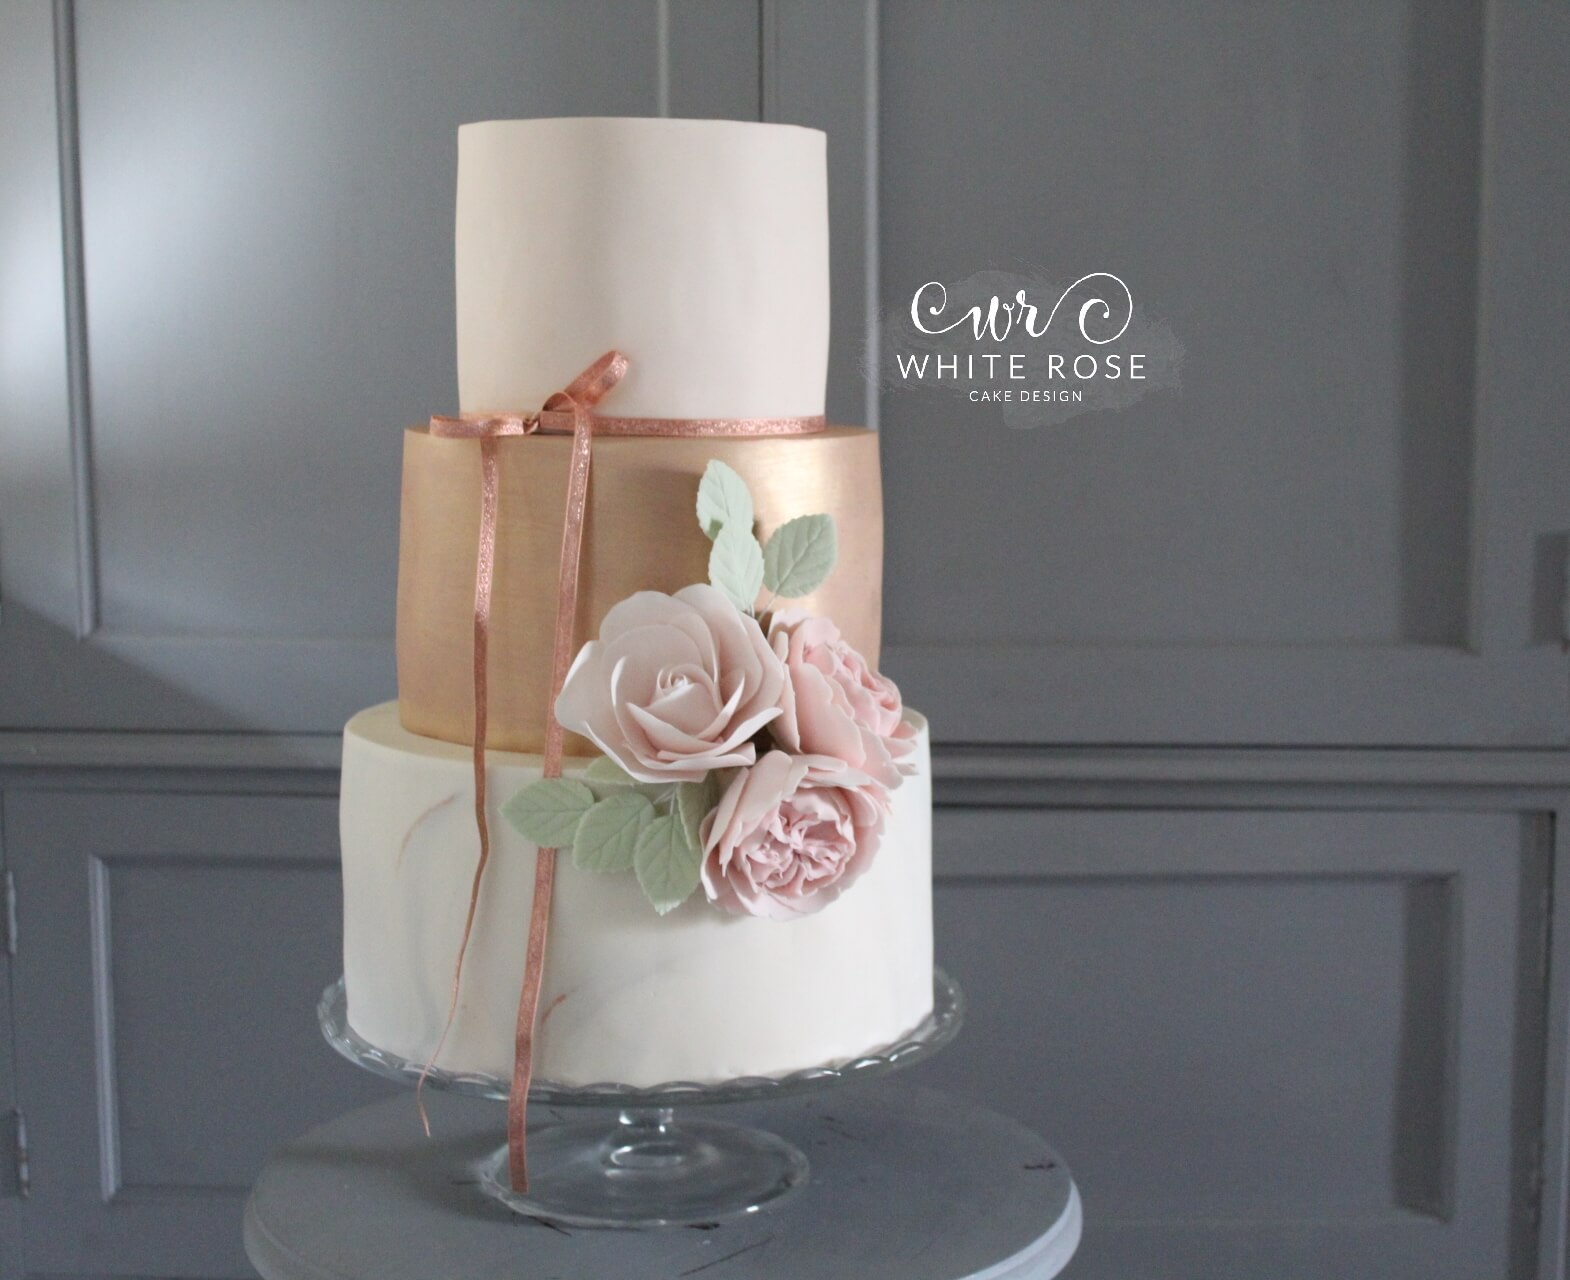 Blush, Rose Gold and Marble Three Tier Wedding Cake by White Rose Cake Design in West Yorkshire Bespoke Wedding Cake Maker